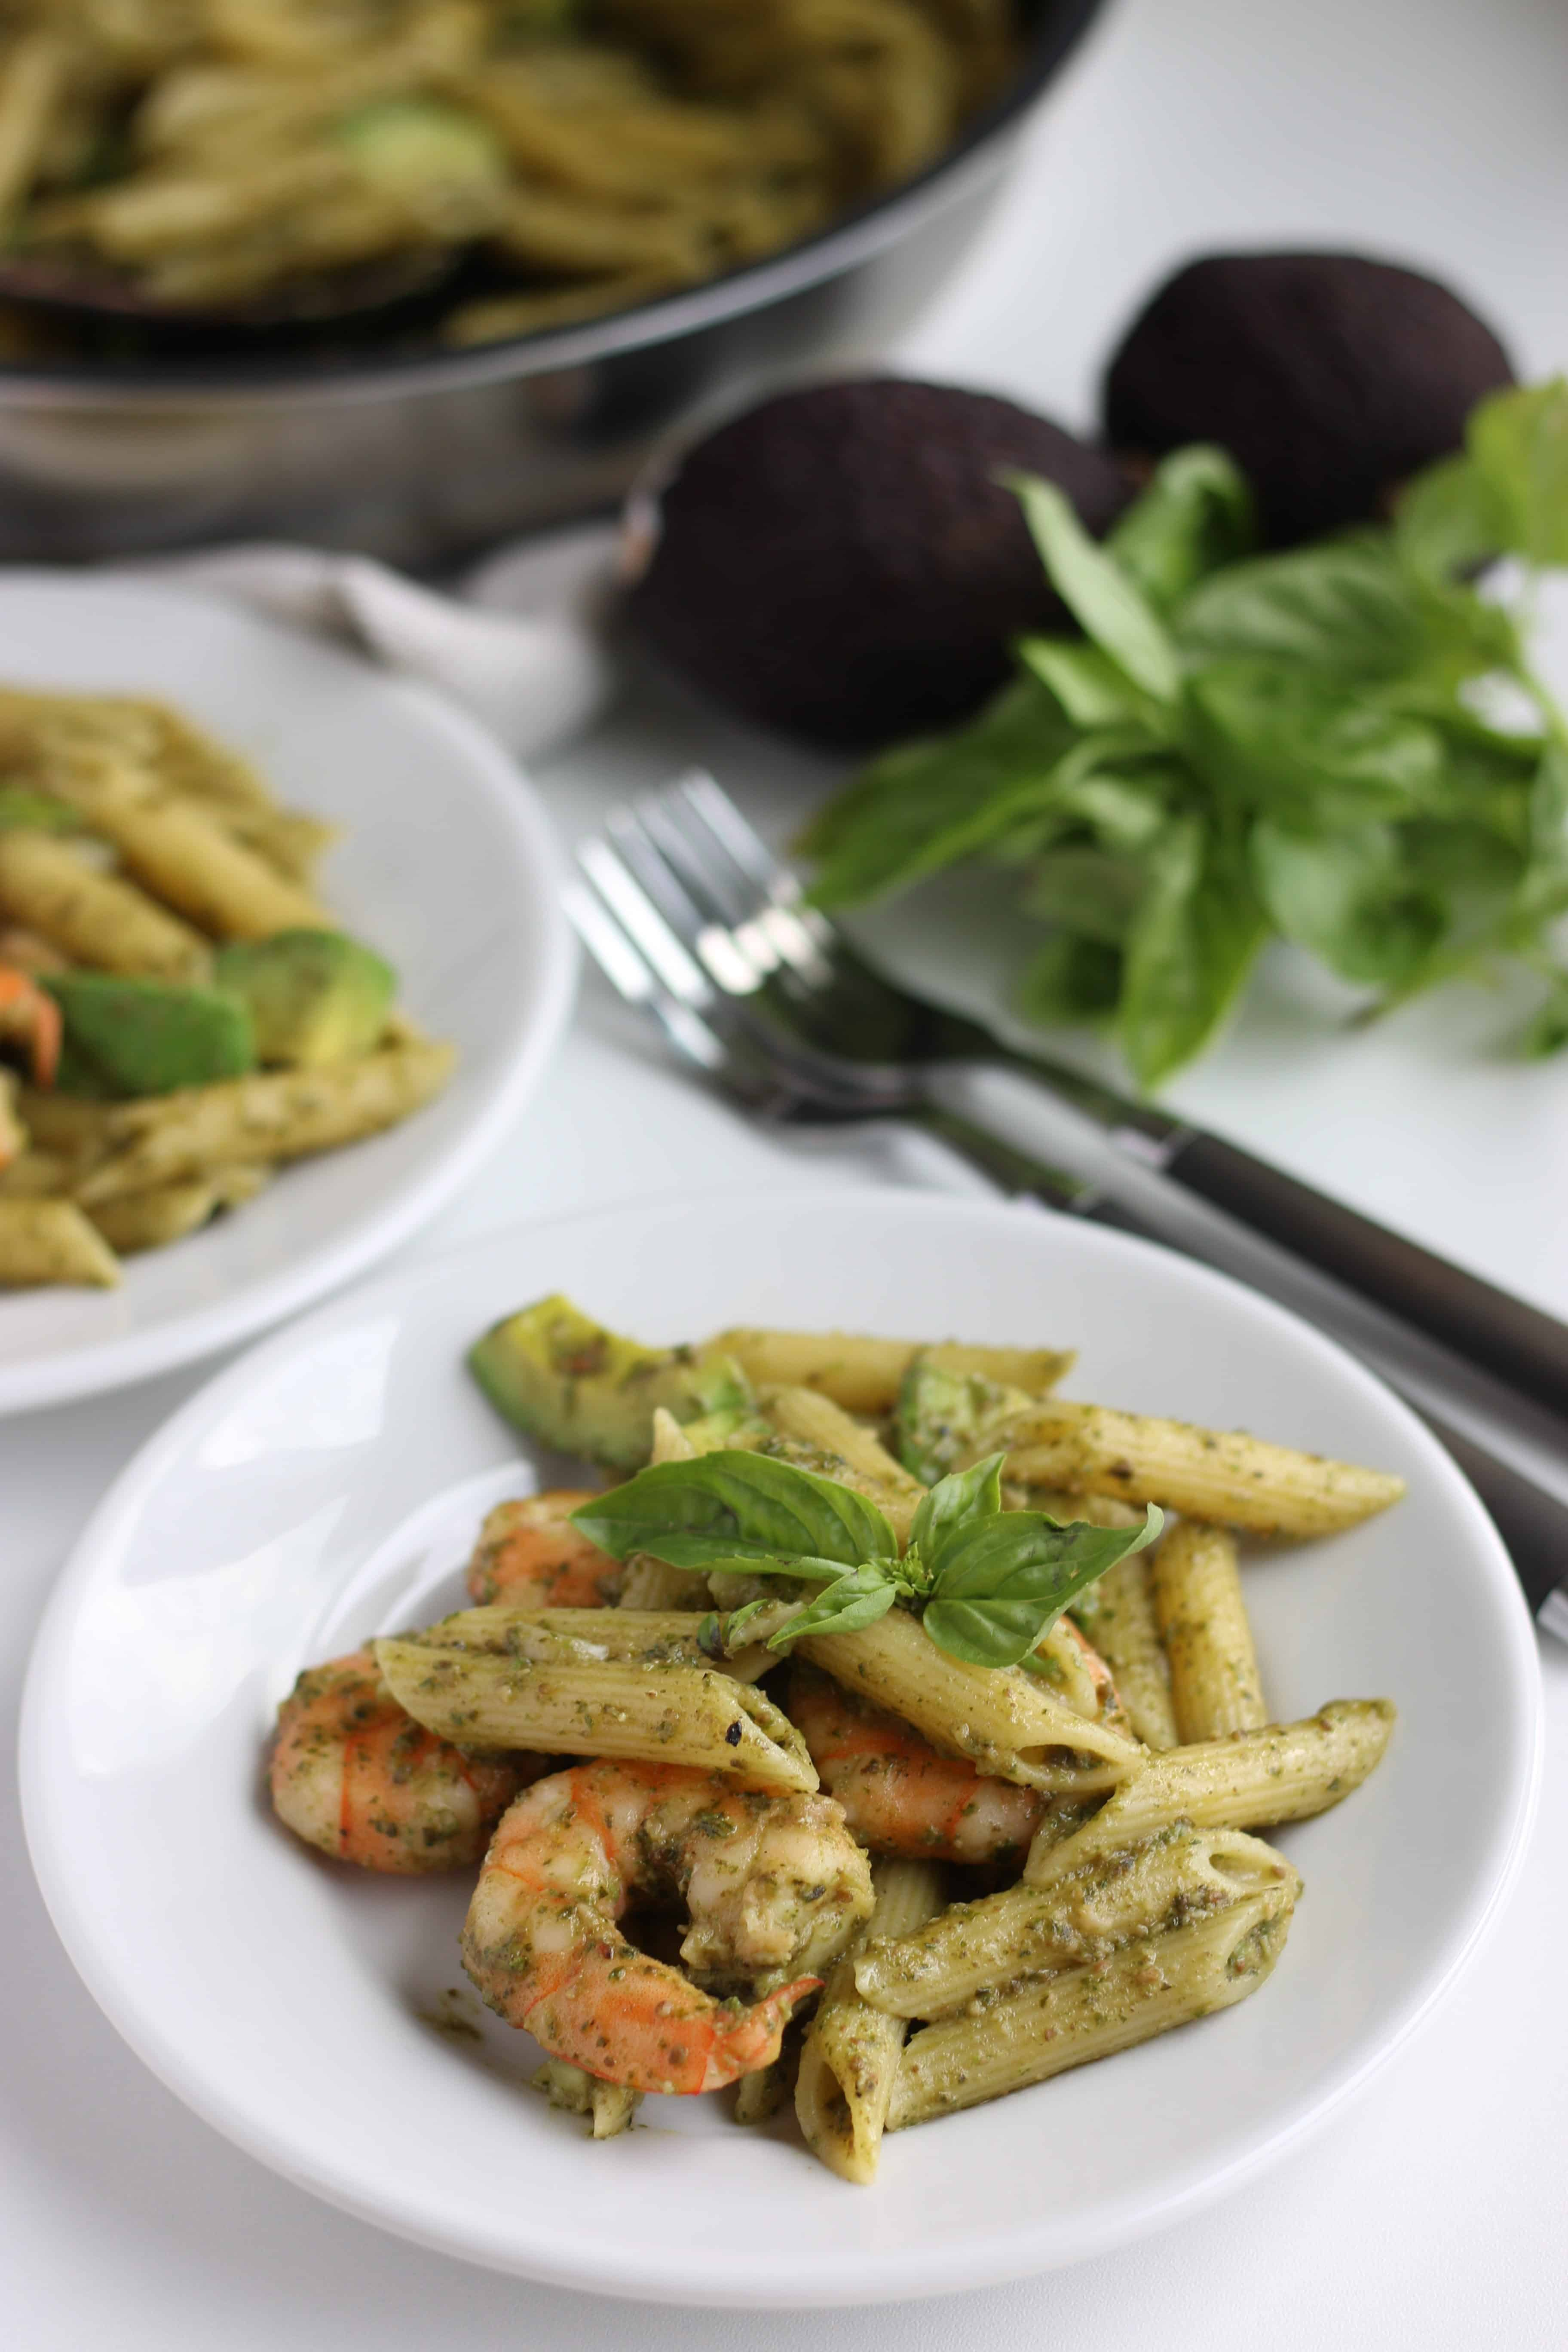 Avocado & Shrimp Basil Pasta is our favorite green pasta with home made basil sauce. Fresh basils sauce goes well with anything but creamy avocado and delicious shrimp is the best. The aroma of basil makes you hungry. Enjoy!